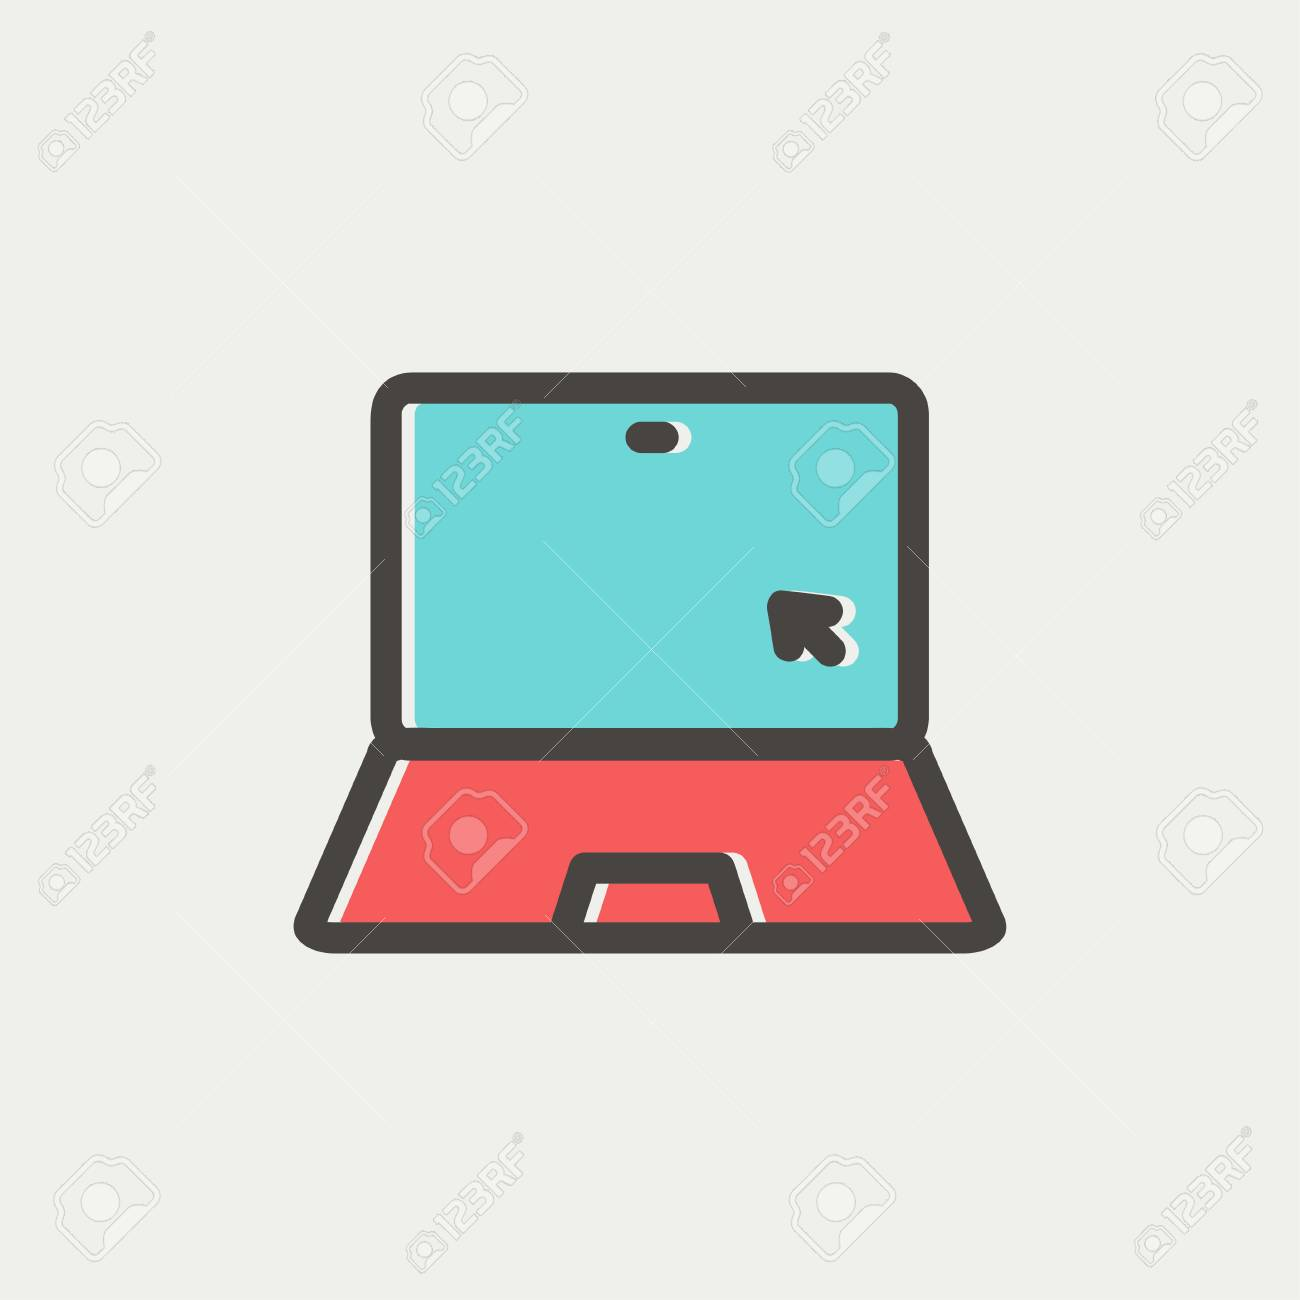 Möbel Modern Design Laptop And Cursor Icon Thin Line For Web And Mobile Modern Minimalistic